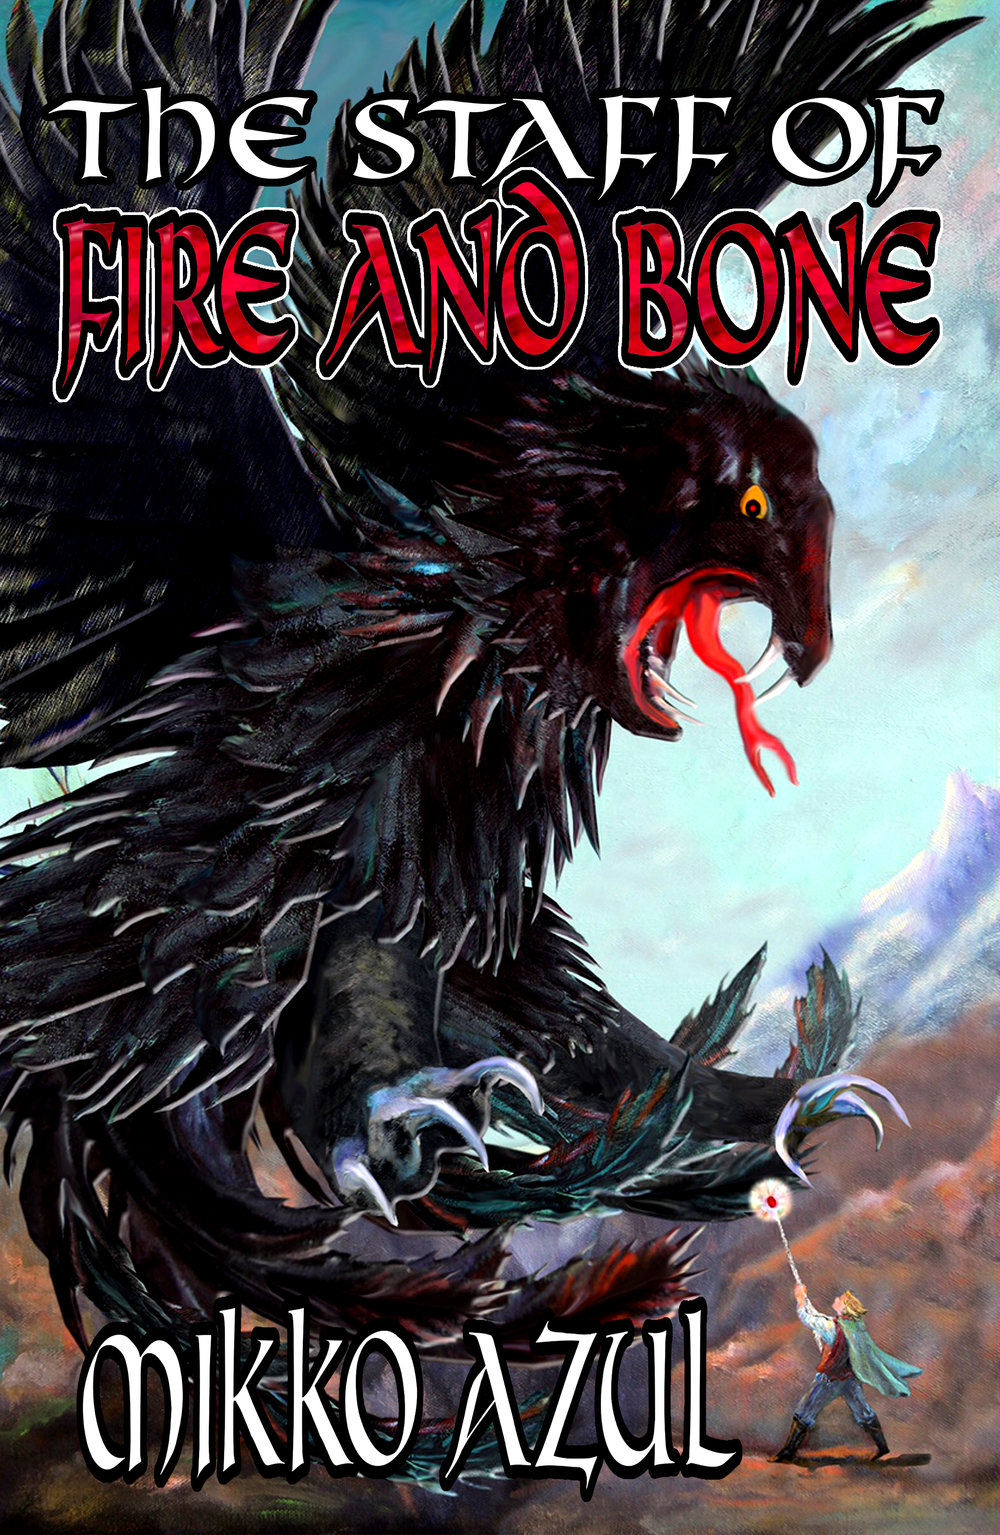 Staff of Fire and Bone Cover eBook edit 2.jpg